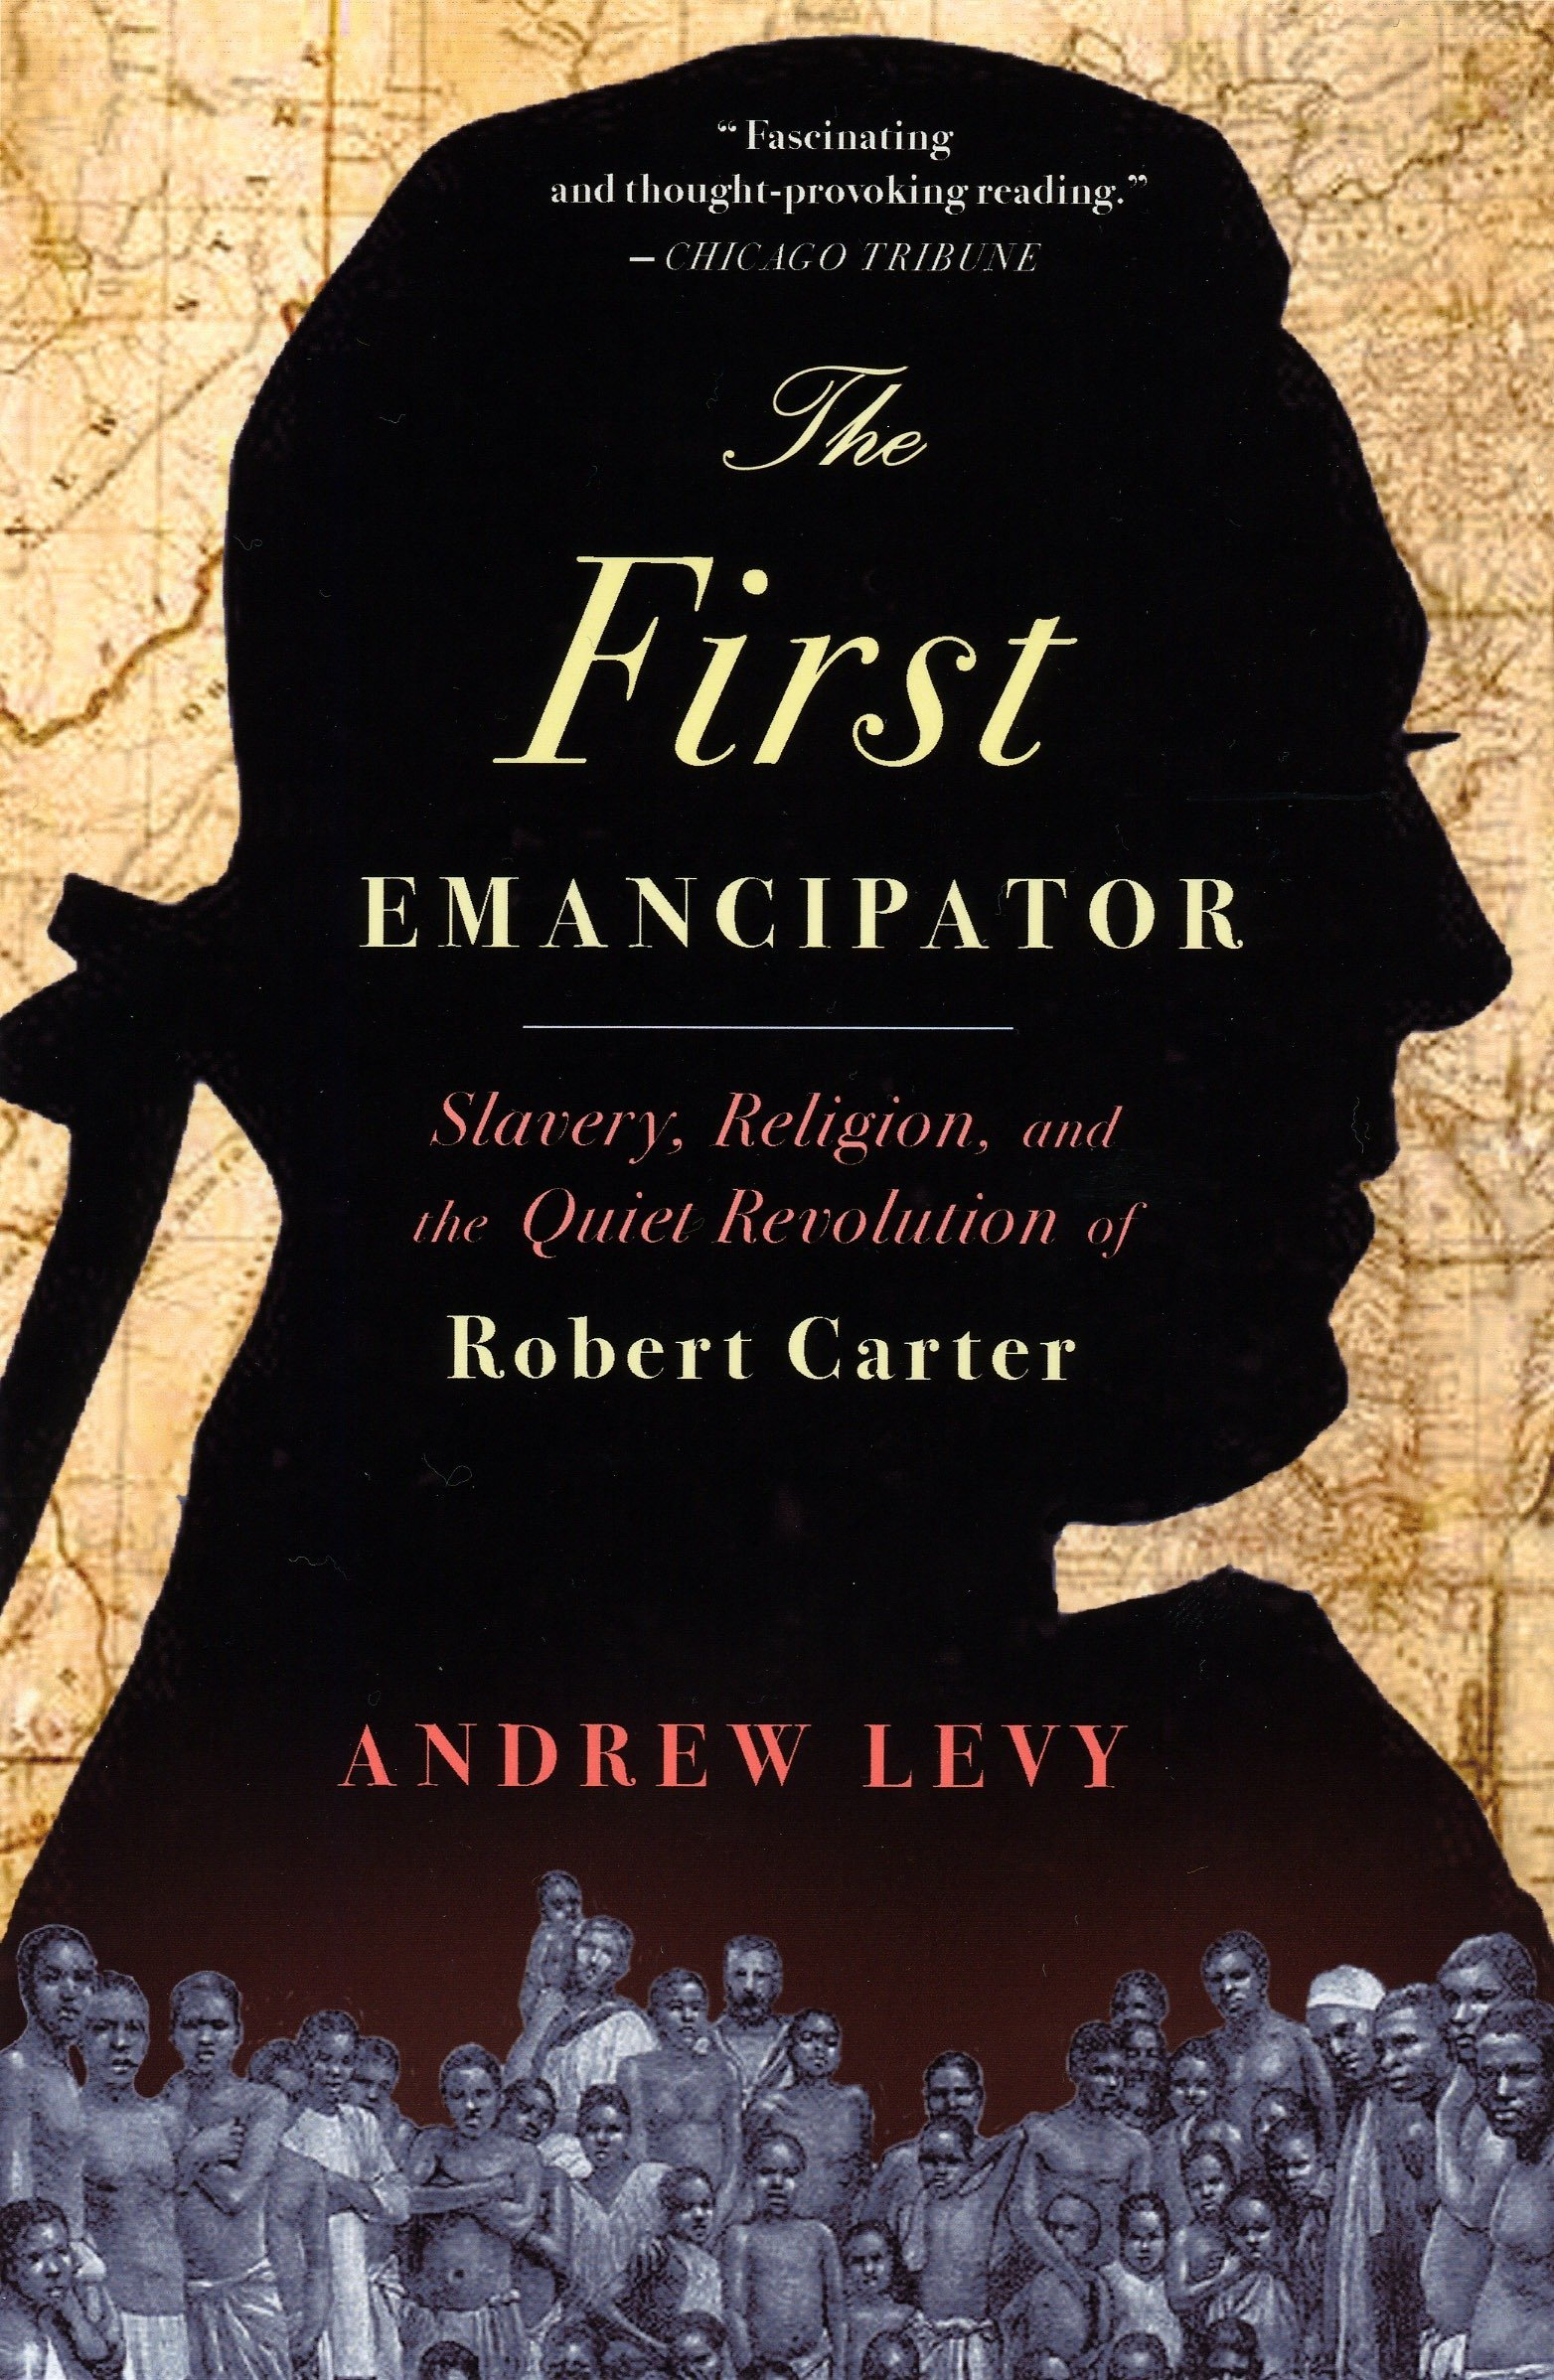 Download The First Emancipator: Slavery, Religion, and the Quiet Revolution of Robert Carter pdf